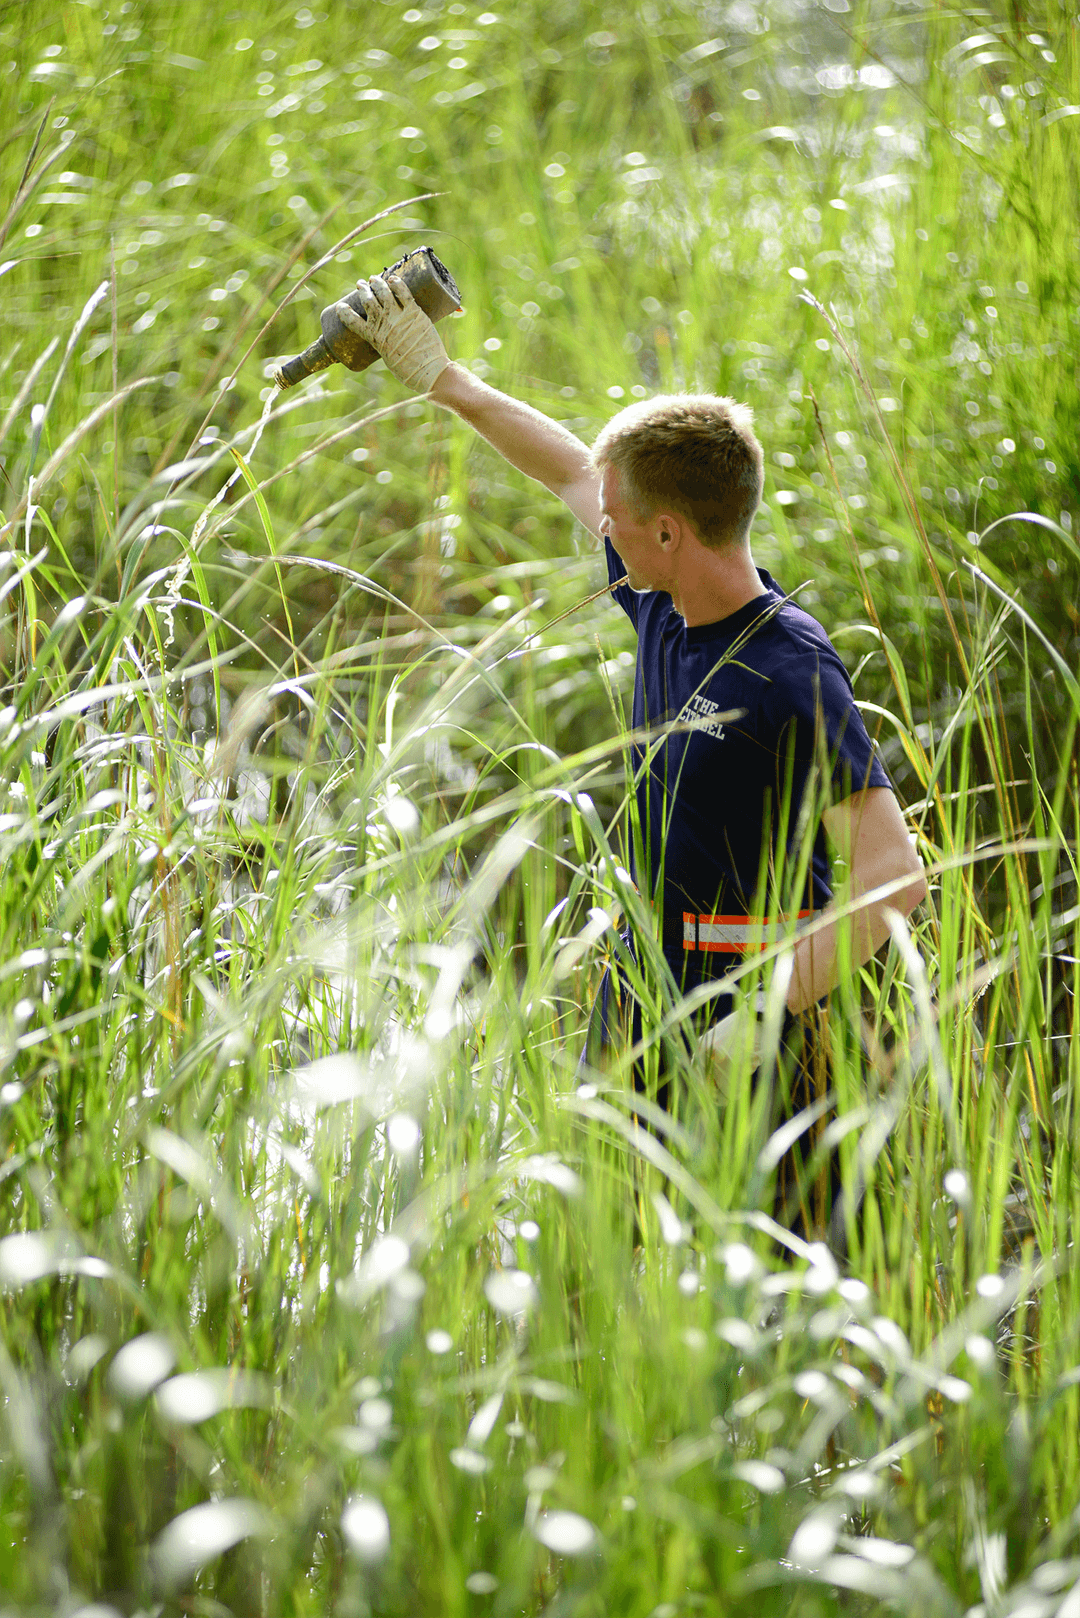 Matthew Miller, '19, participates in an effort to remove trash from the marsh.